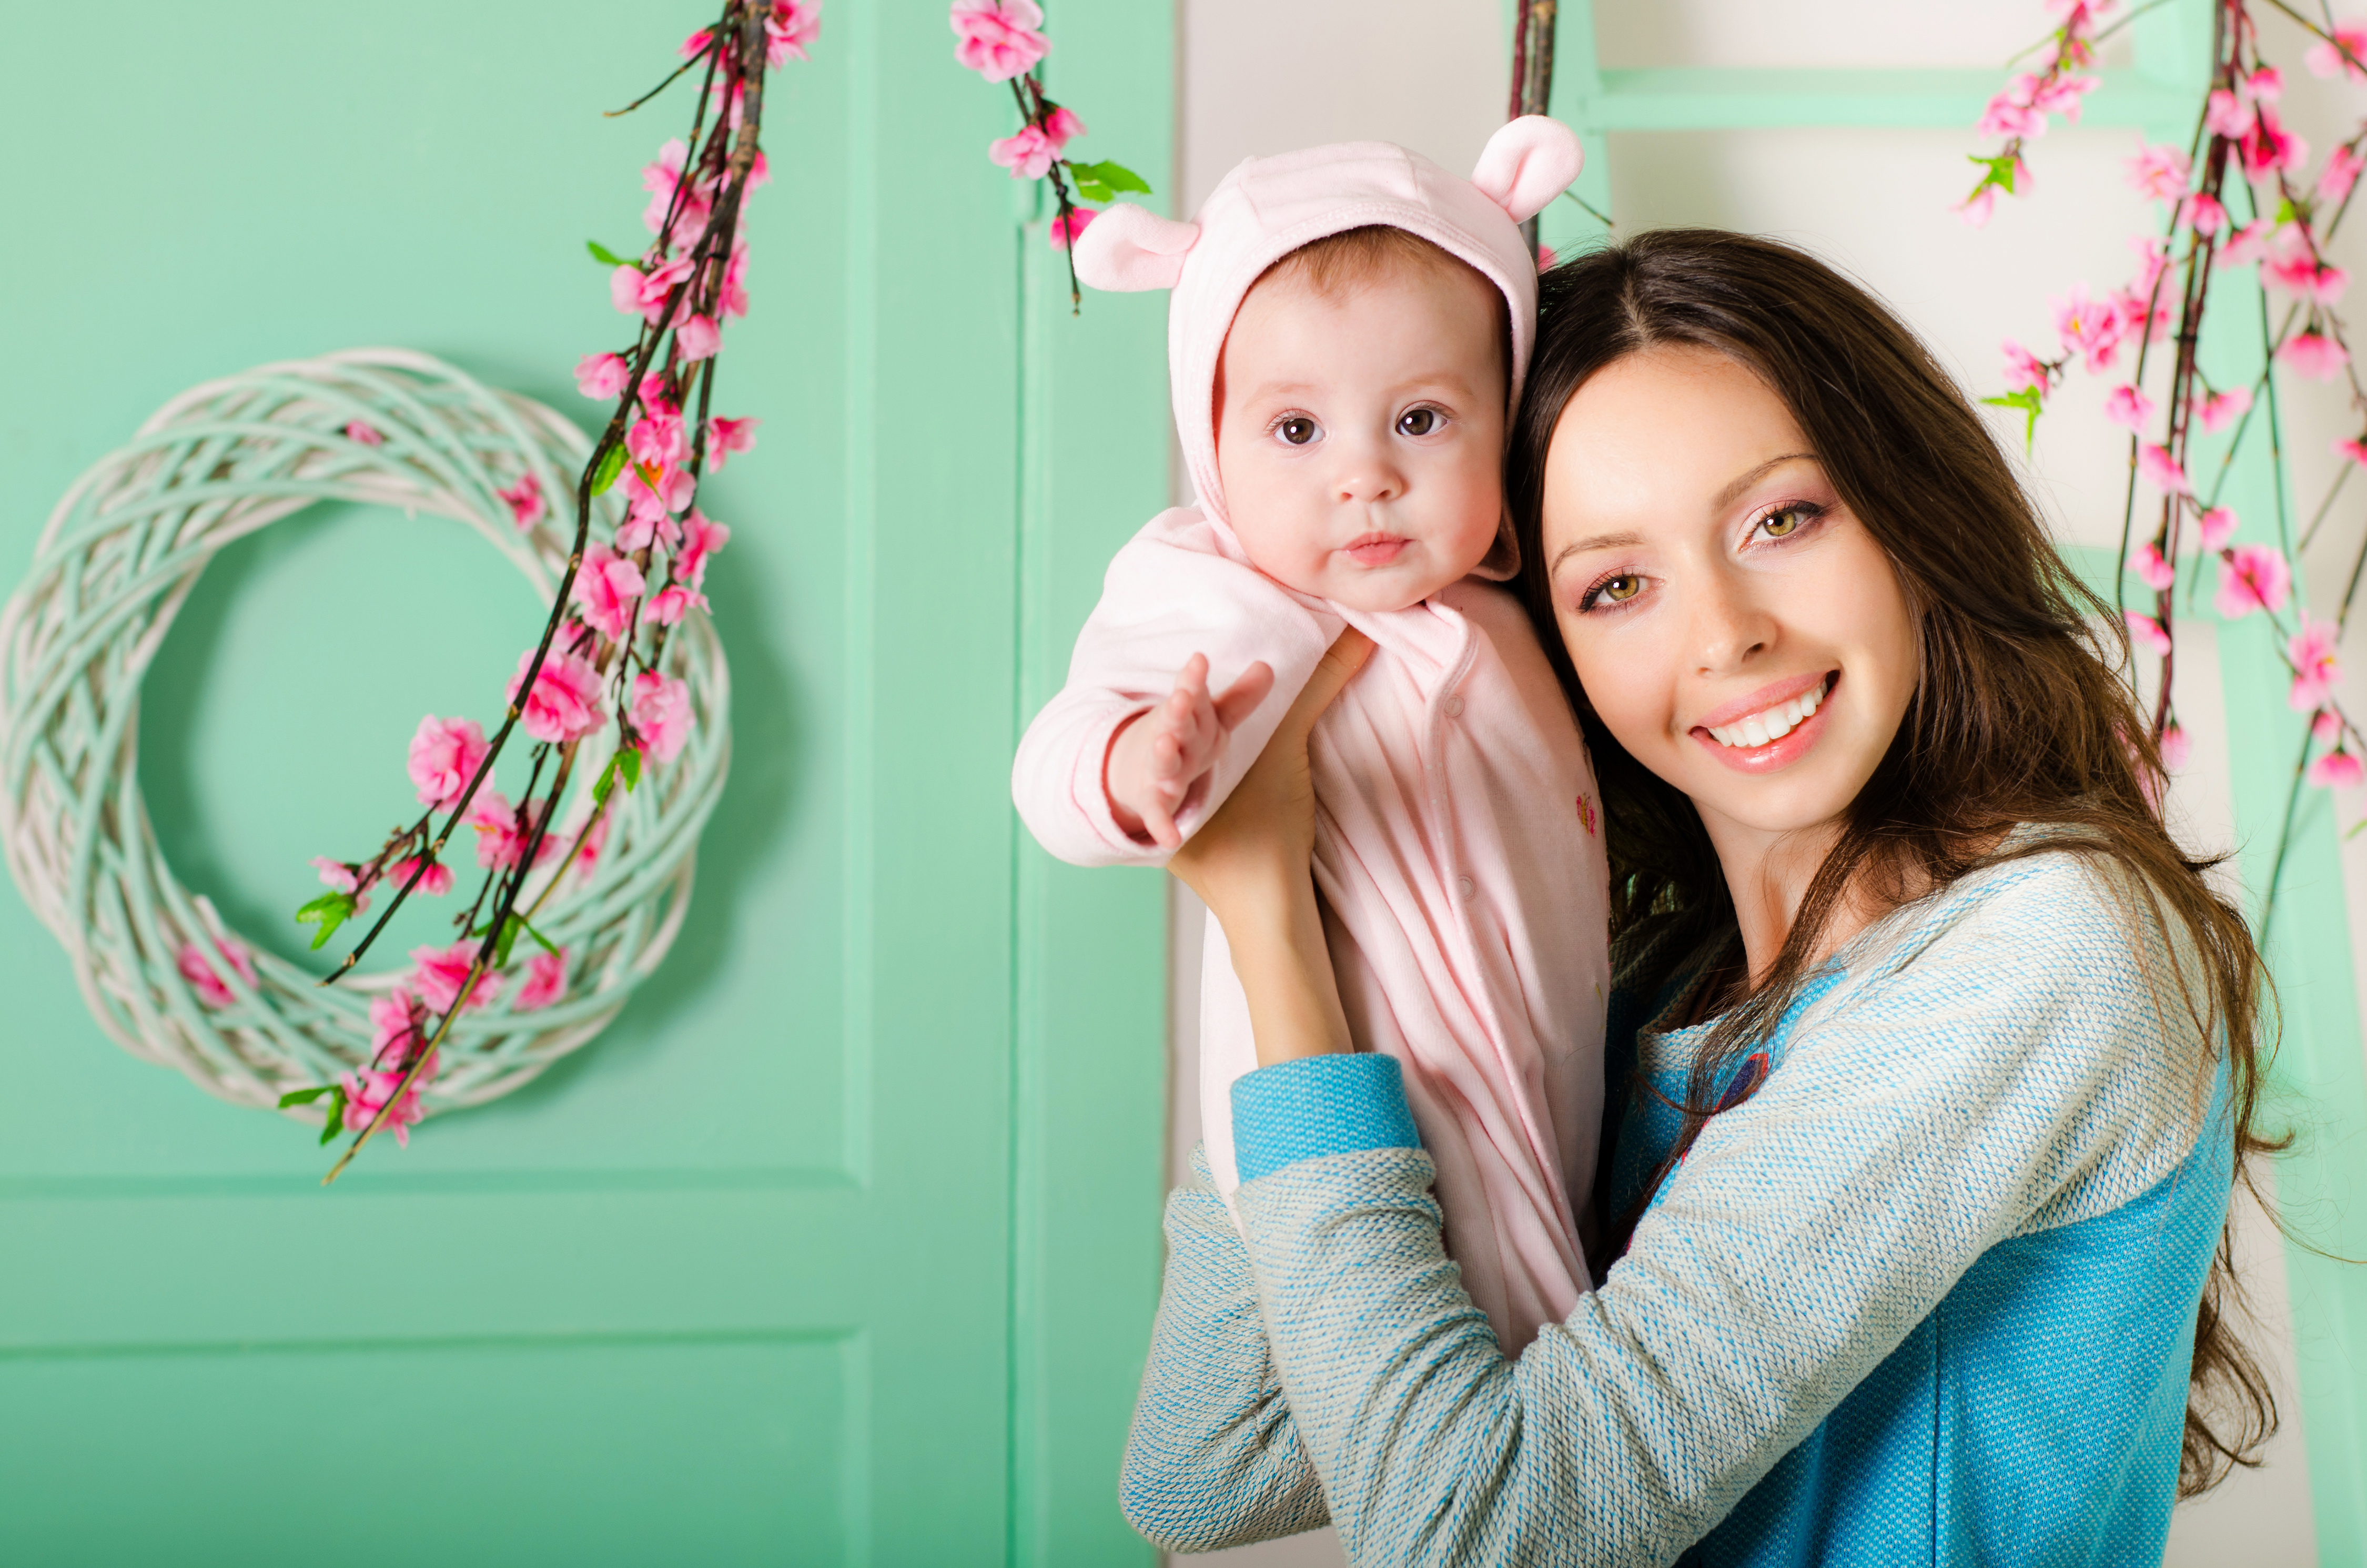 mother holding a baby in her arms. Little girl in a pink dress with ears. On a light background